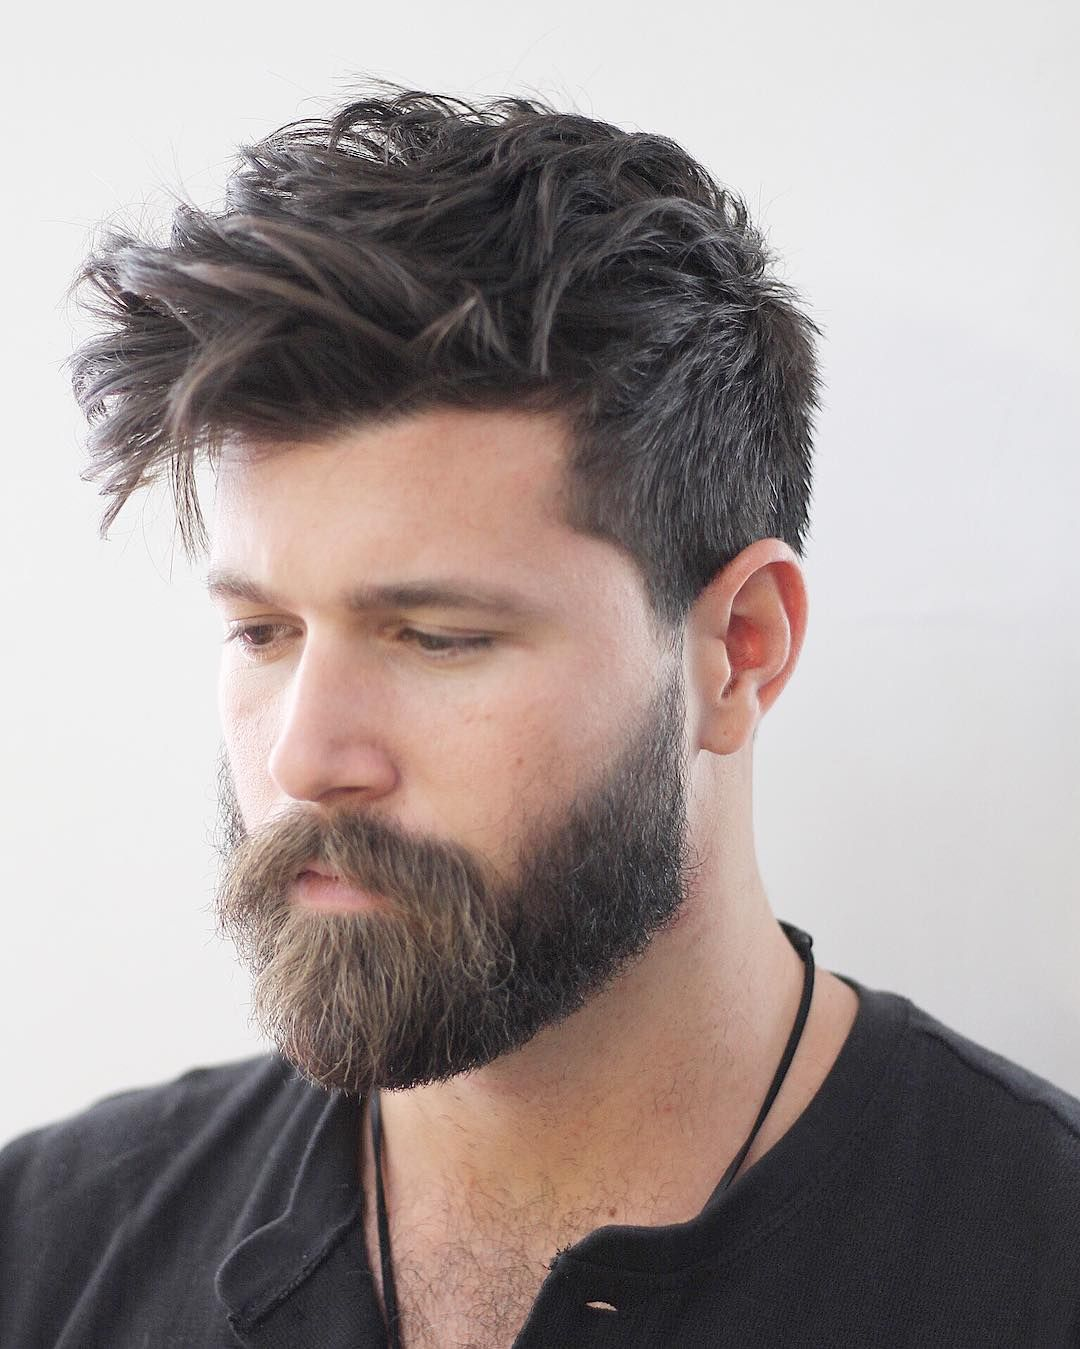 We Are Now Half Way Through 2017 So It Is Time To Take A Look At The Best Haircuts For Men We Have Seen Thi Beard Styles Thick Hair Styles Long